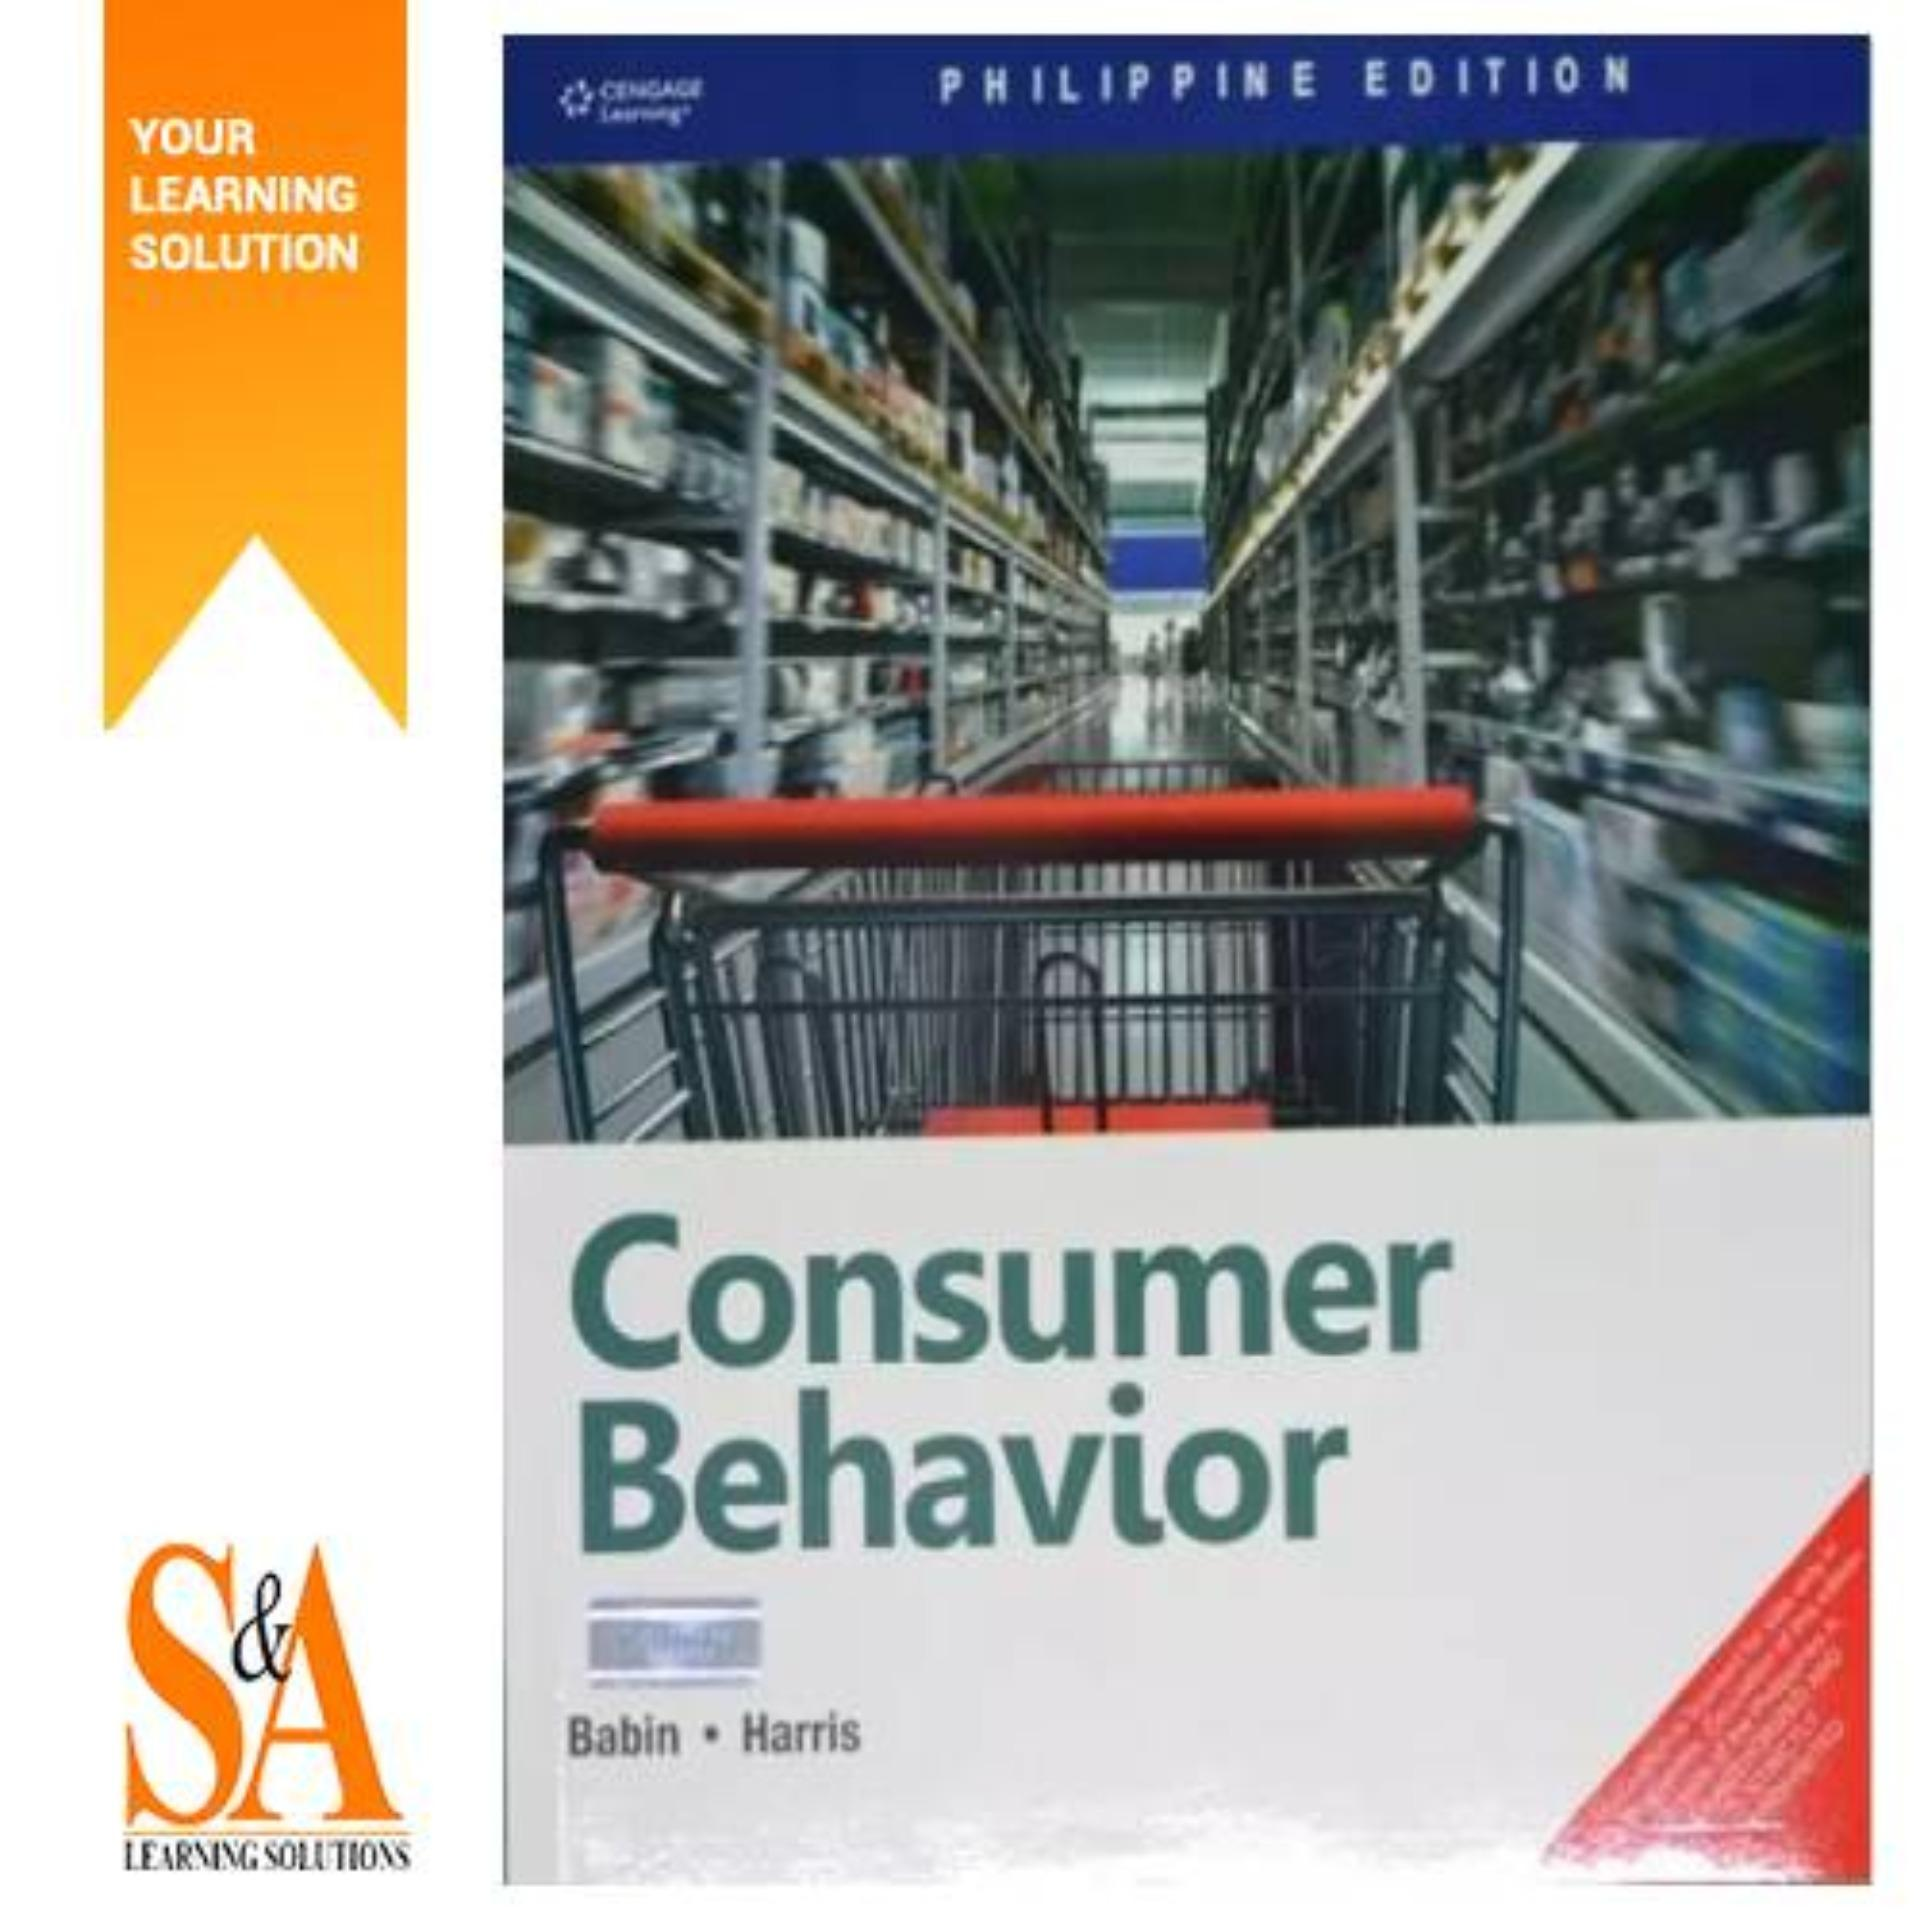 Consumer Behavior By S&a Learning Solutions.